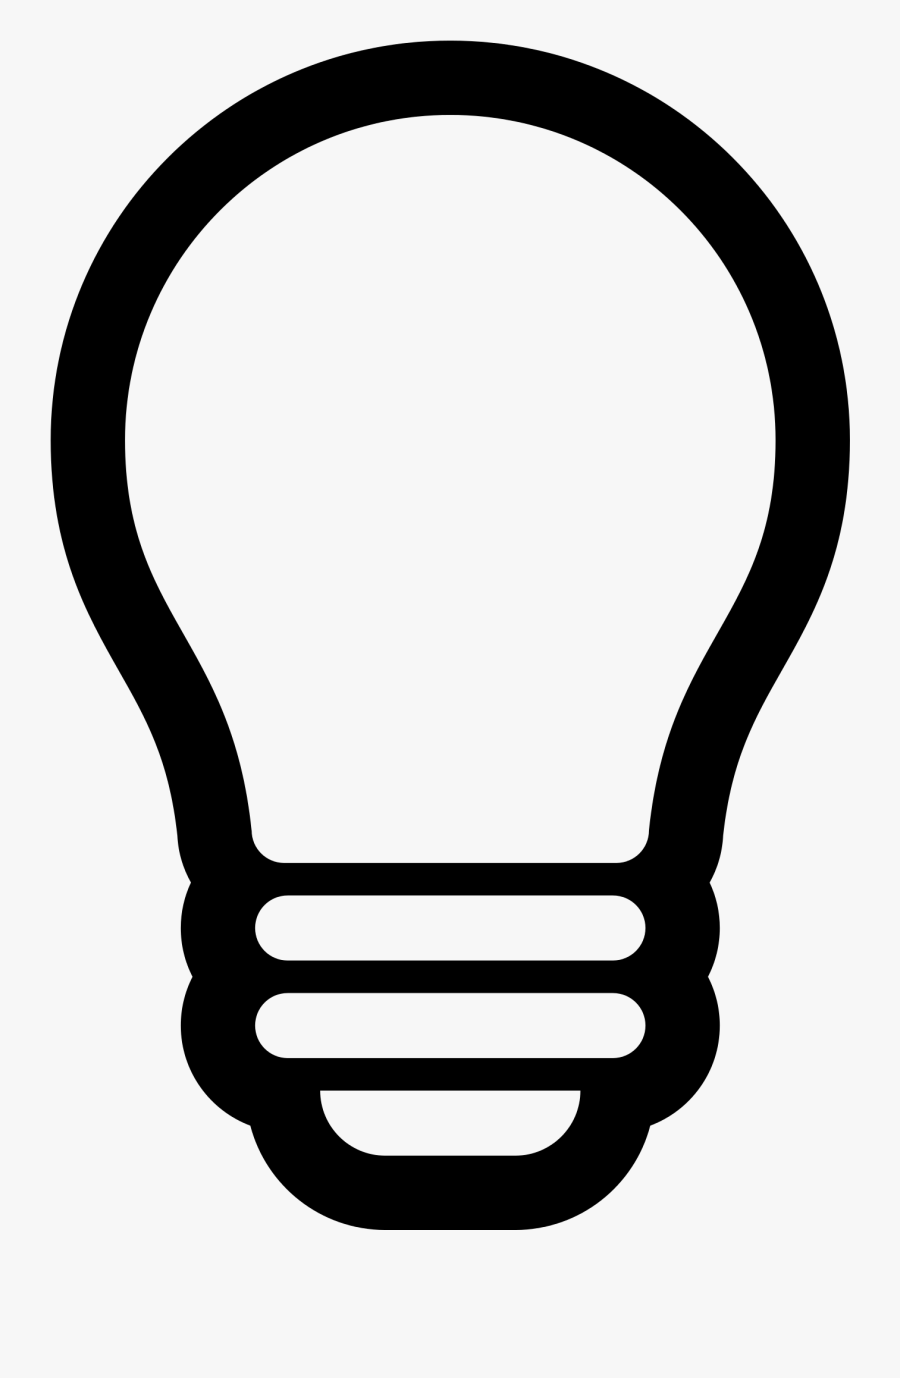 lightbulb clipart simple light bulb icon outline free transparent clipart clipartkey lightbulb clipart simple light bulb